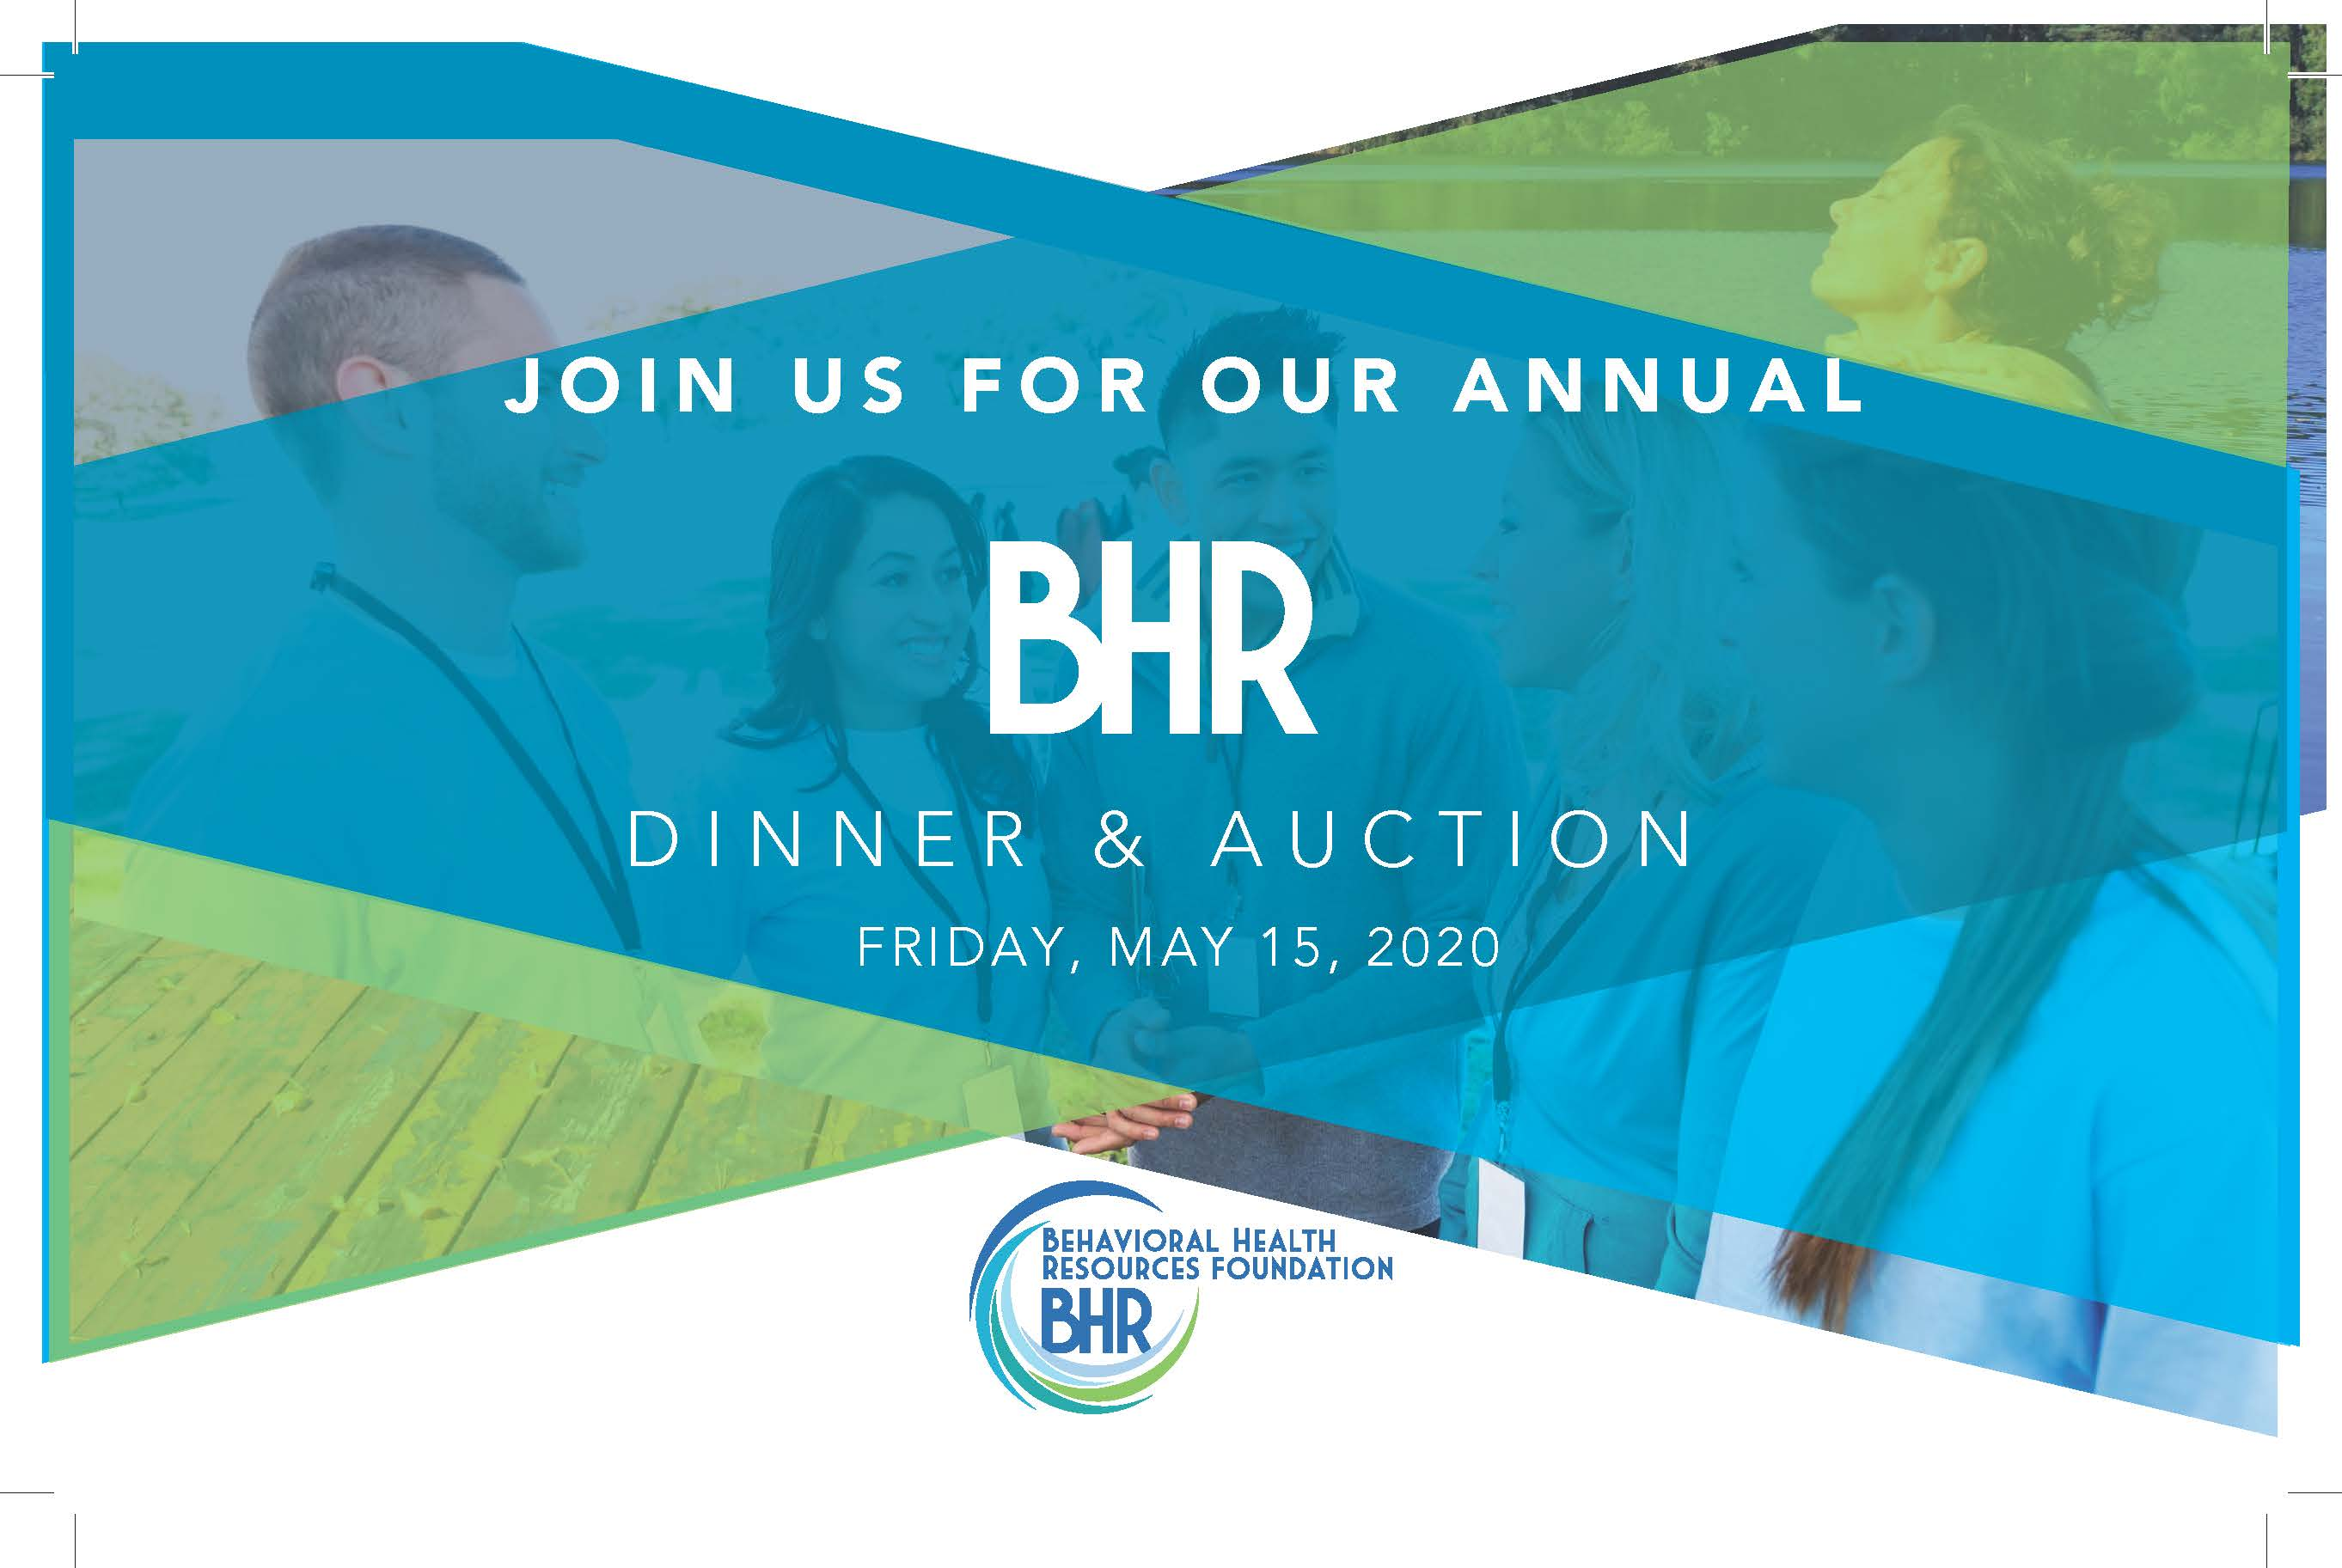 2020 BHR_Dinner Auction_8.5x5.5_INVITATION_updated 030818_Part1